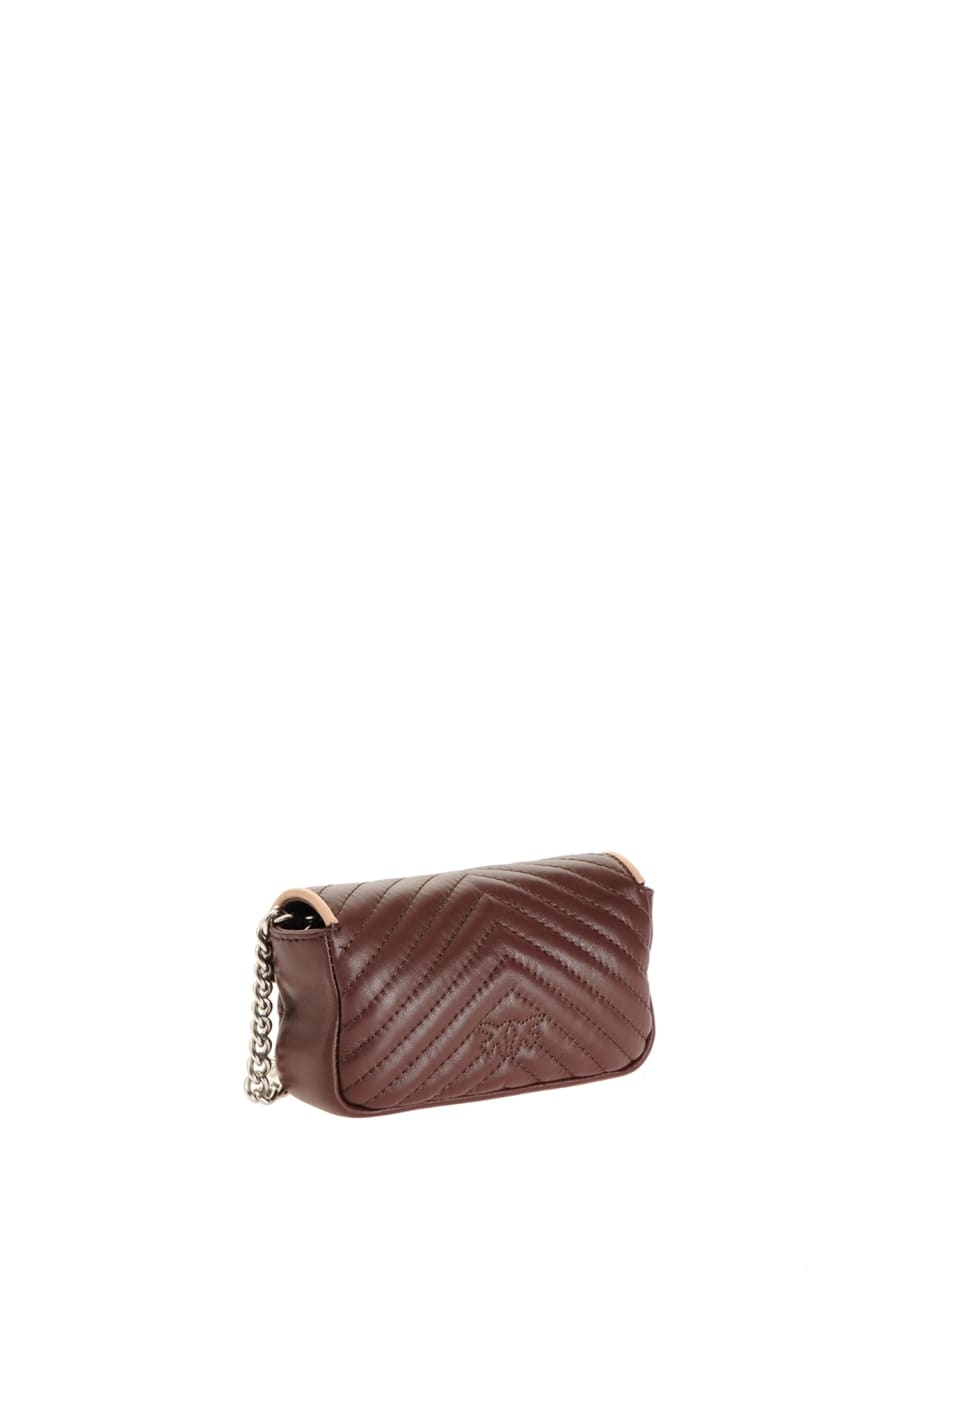 Tiny Love Bag V Quilt in quilted nappa leather - Pinko